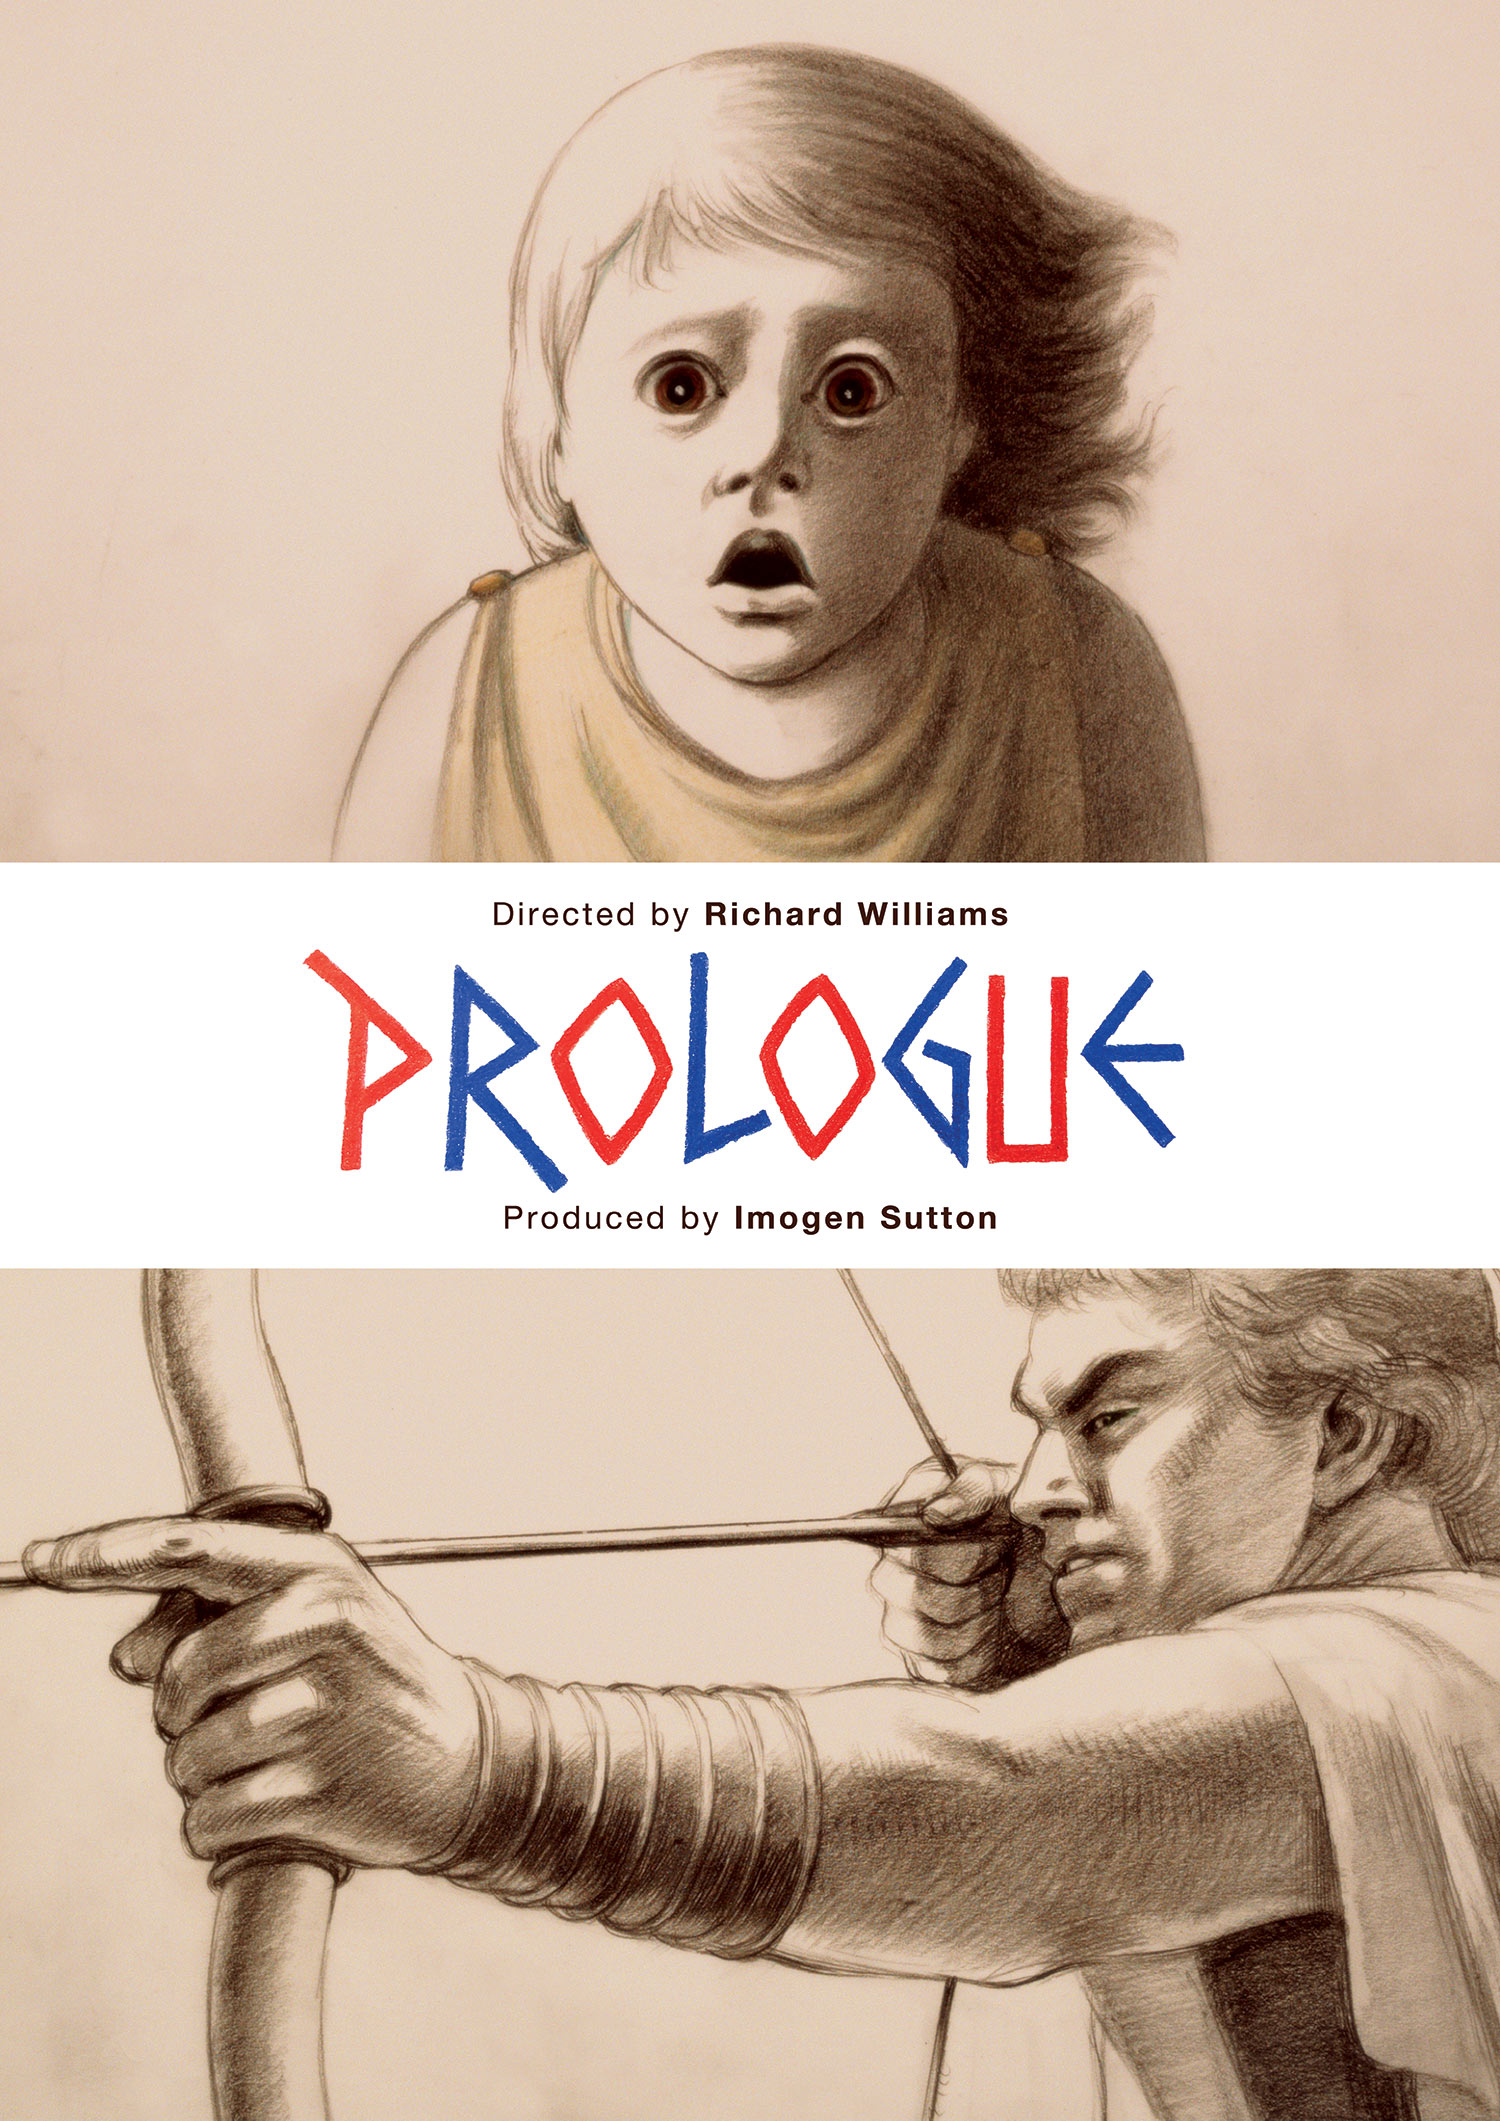 Richard Williams Reveals Trailer for New Film \'Prologue\'